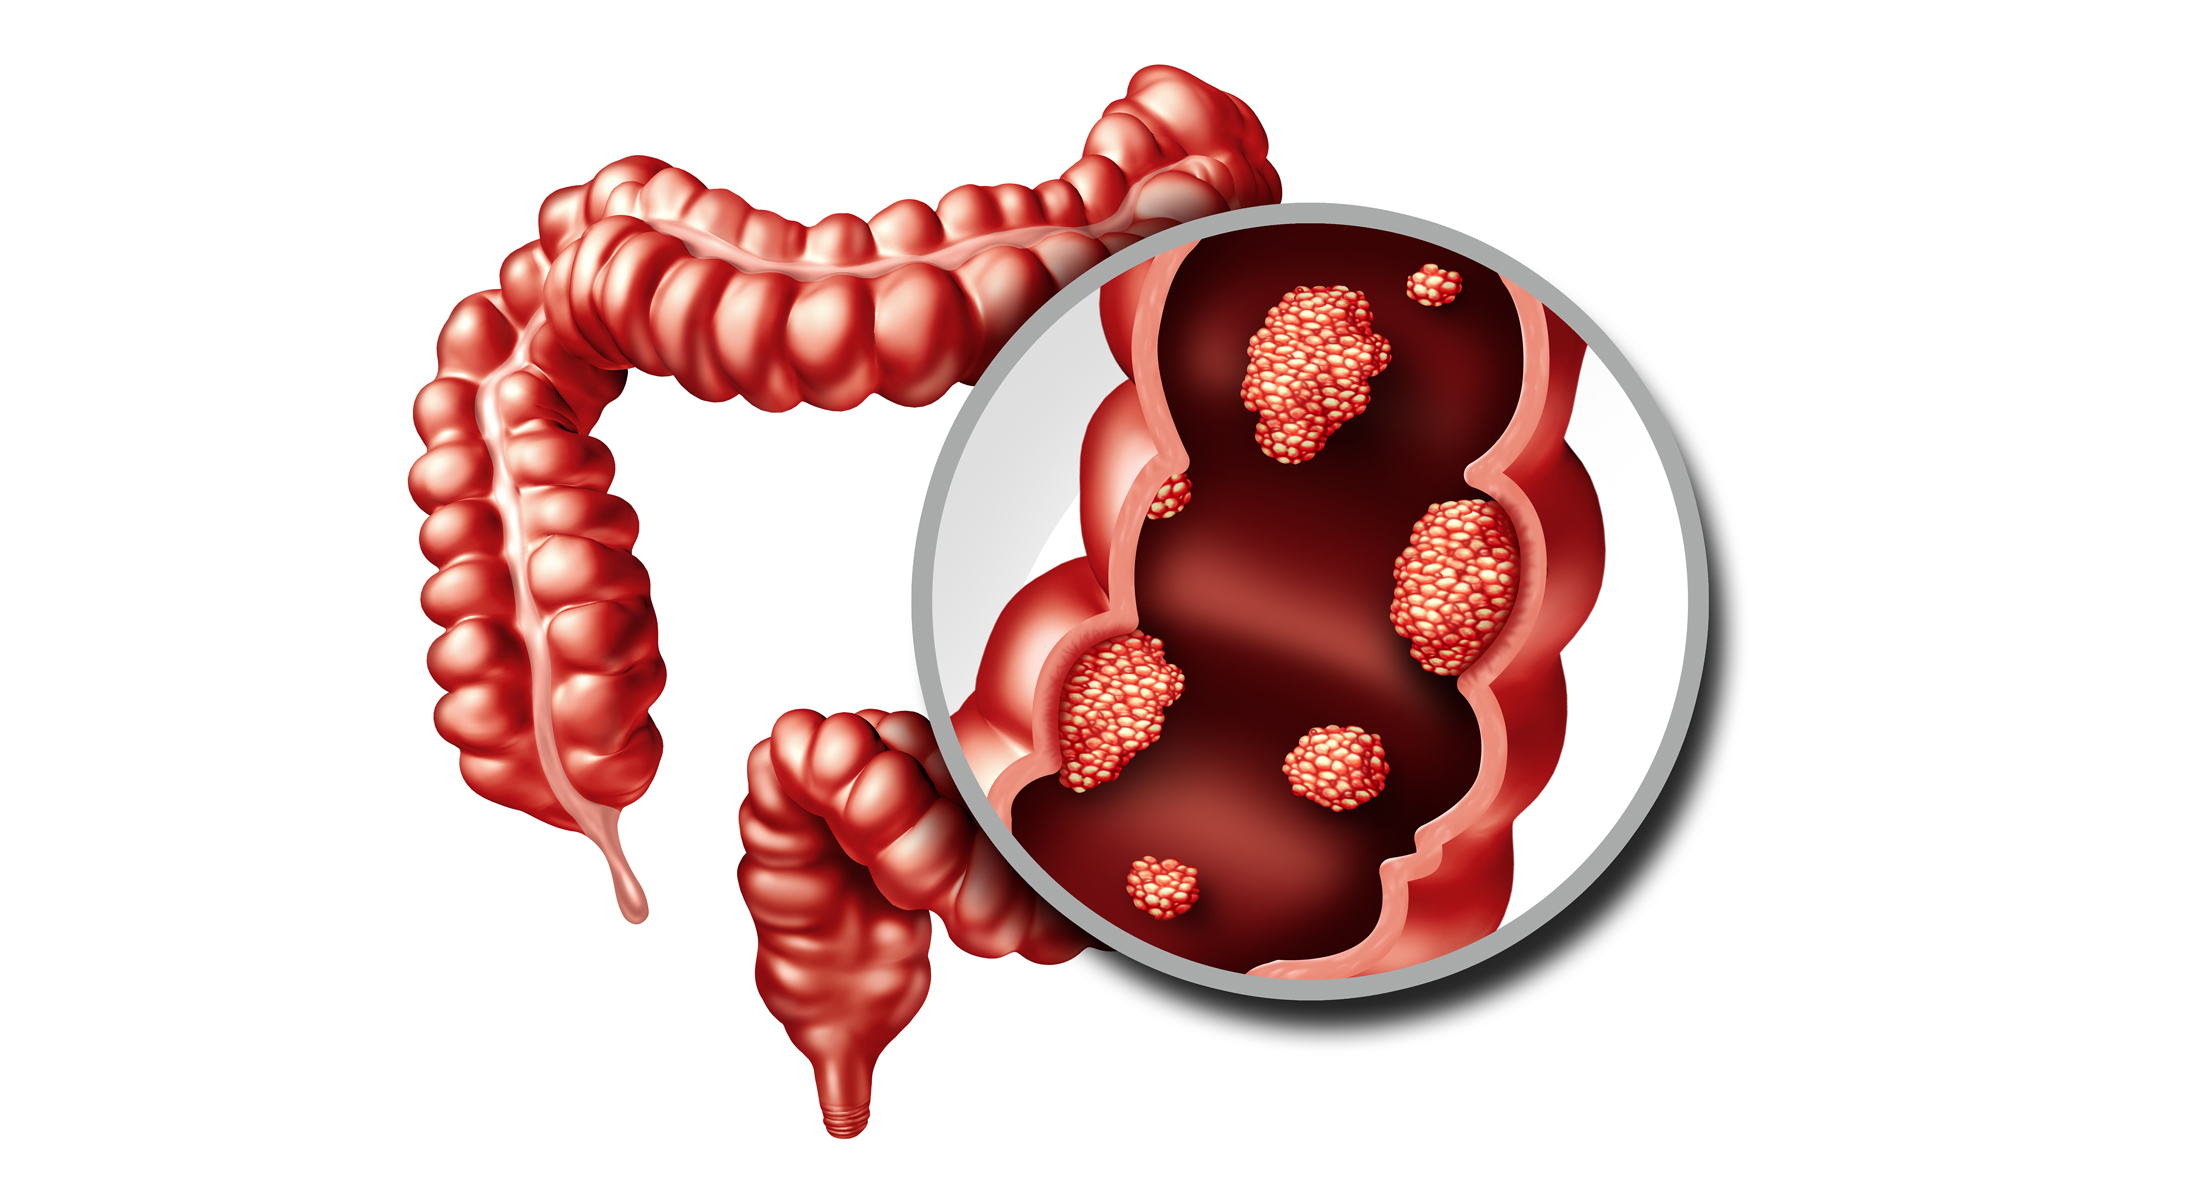 Two New Studies Reveal Universal Gut Microbiome Signatures In Colorectal Cancer